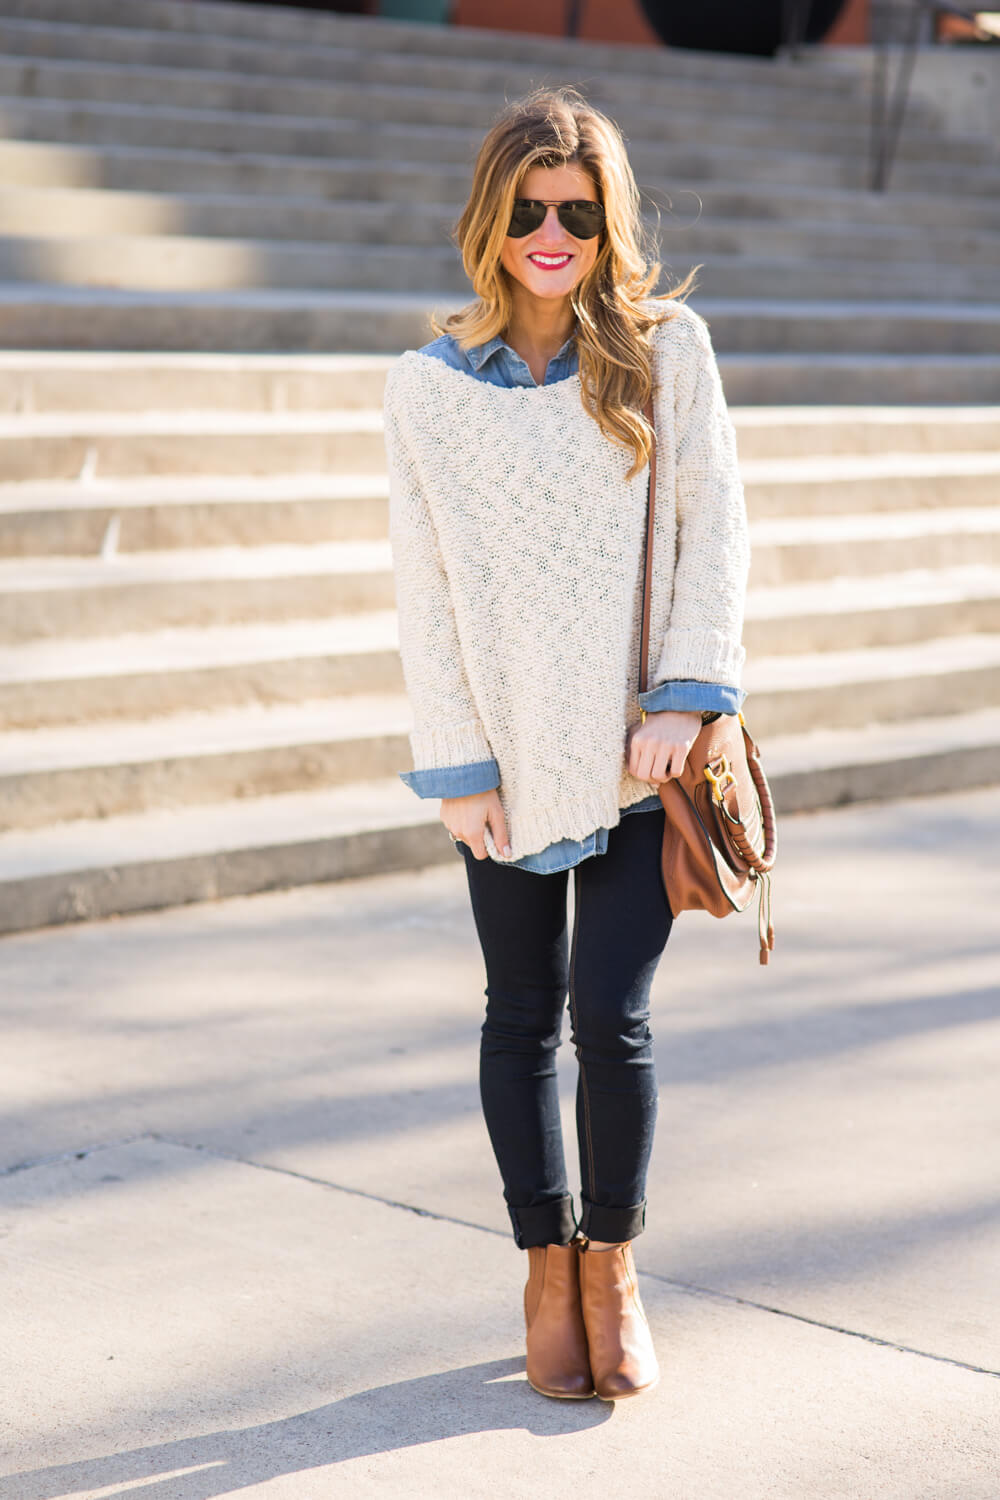 Oversized Sweater + Chambray Shirt \u2022 BrightonTheDay